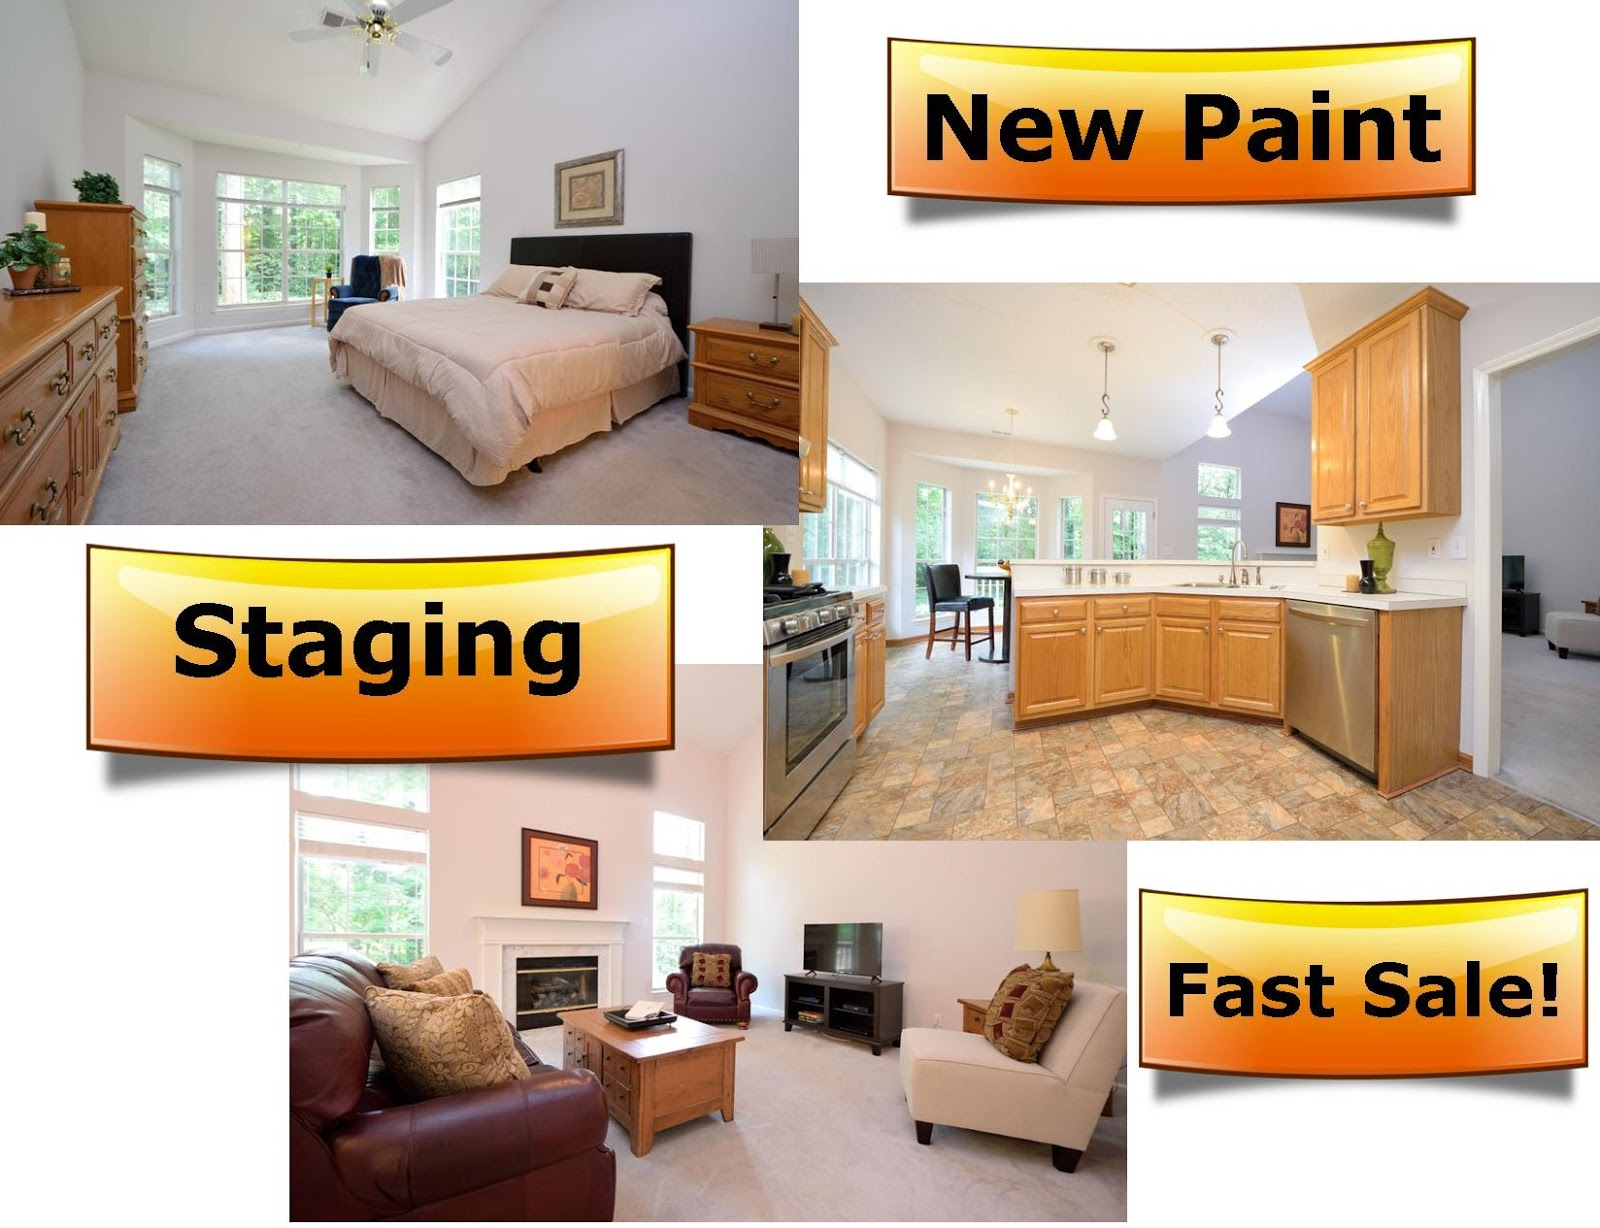 Home Staging Helps Charlotte Home Sell Over List Price In One Day In Q2 Carolina Spaces